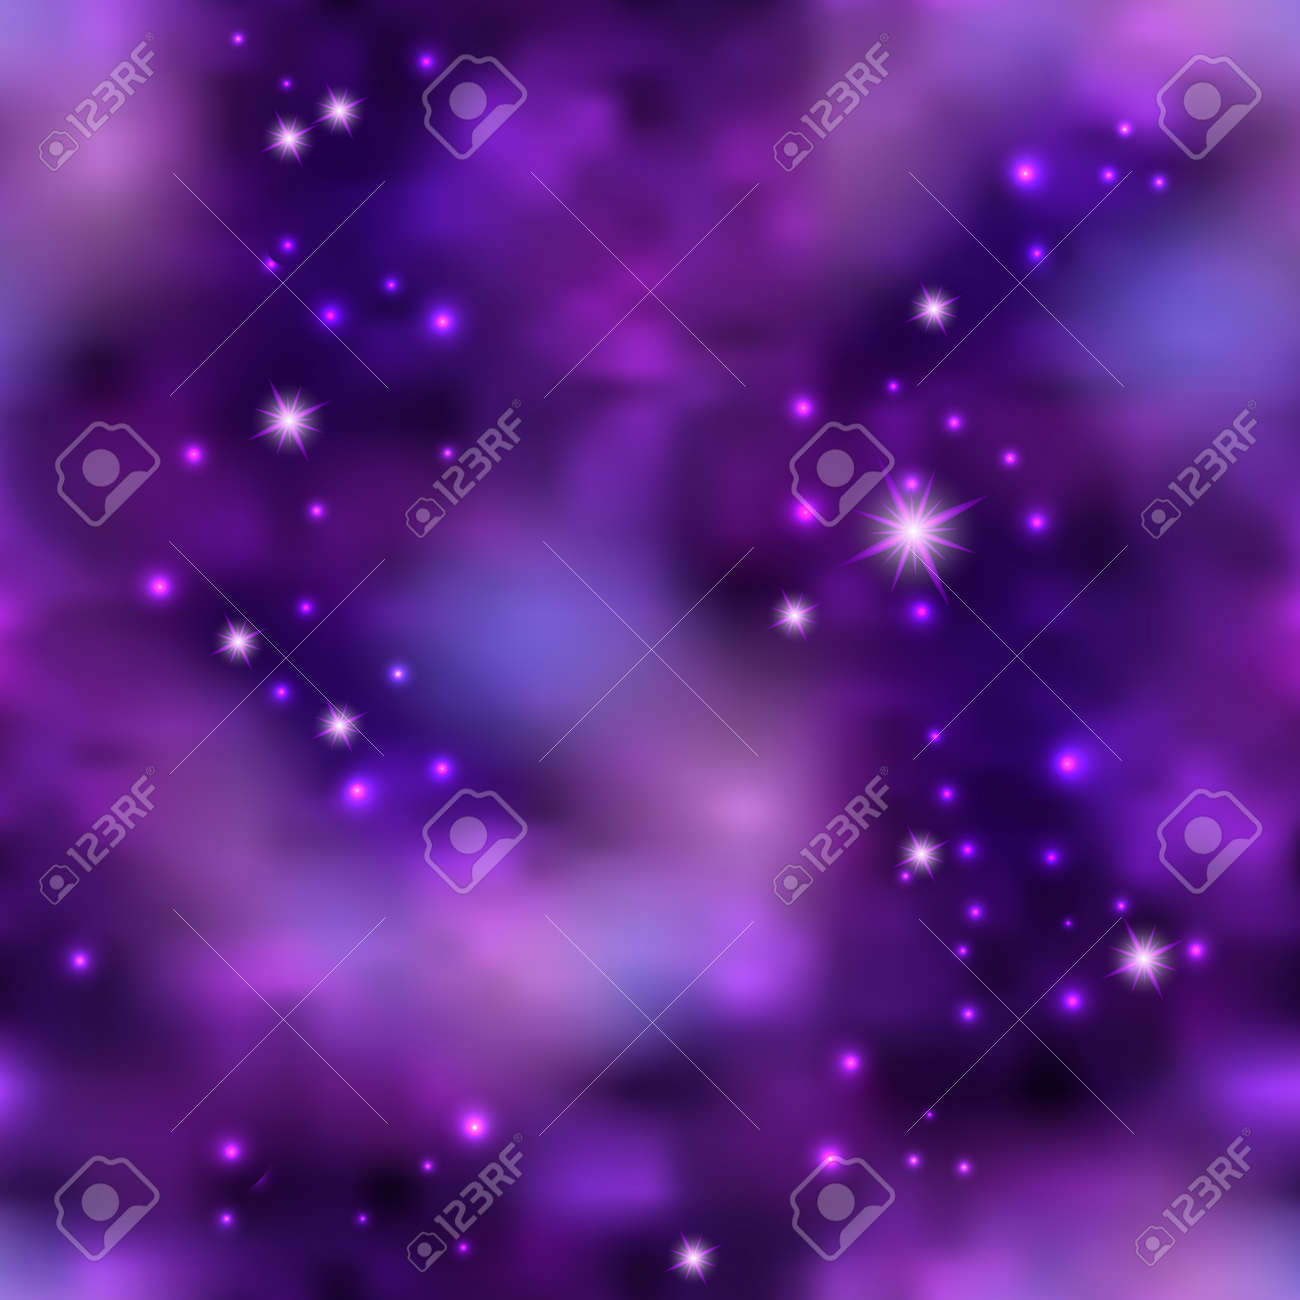 Magic galaxy space with shiny nebula star dust. Purple mysterious night sky, light flare and cloudy mist. Abstract background, seamless cosmic pattern, vector illustration - 162912074